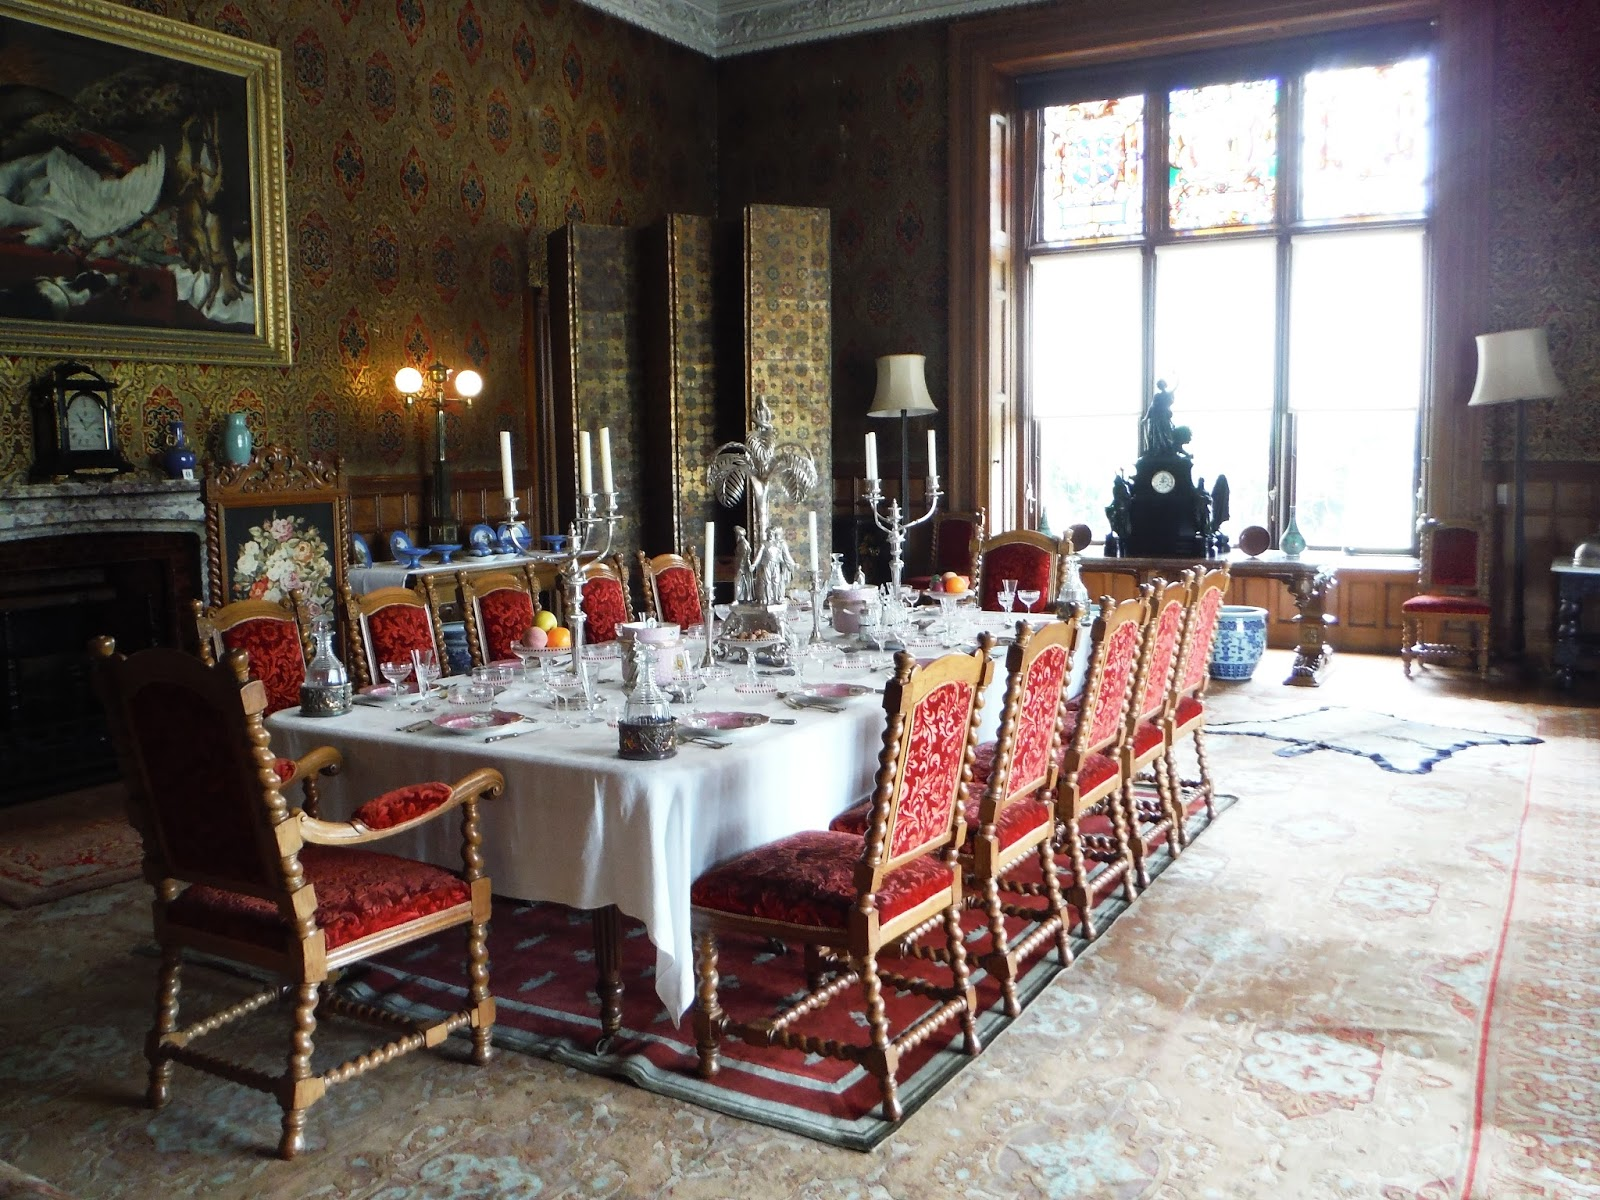 The dining table set up for a feast in the main house in Charlecote Park